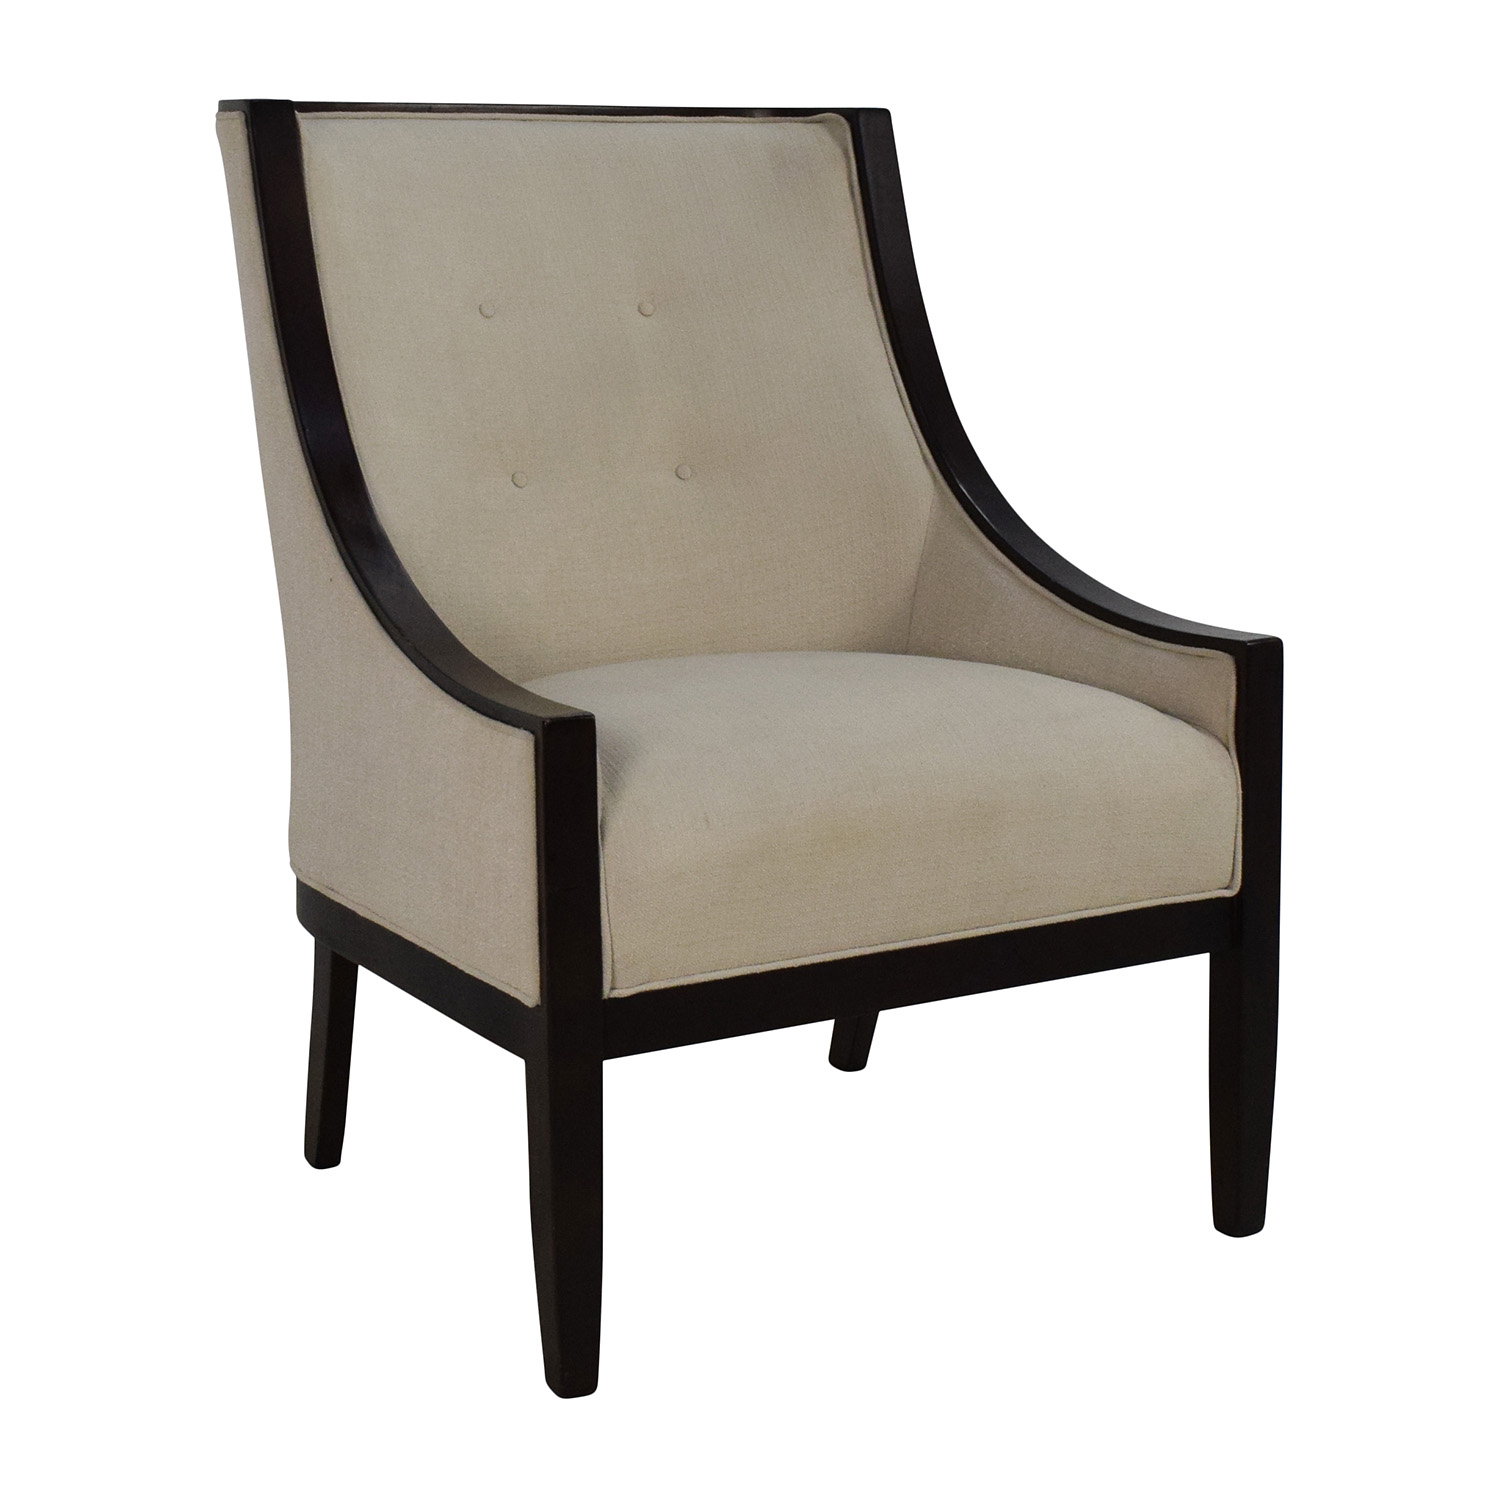 Cream Tufted Accent Chair